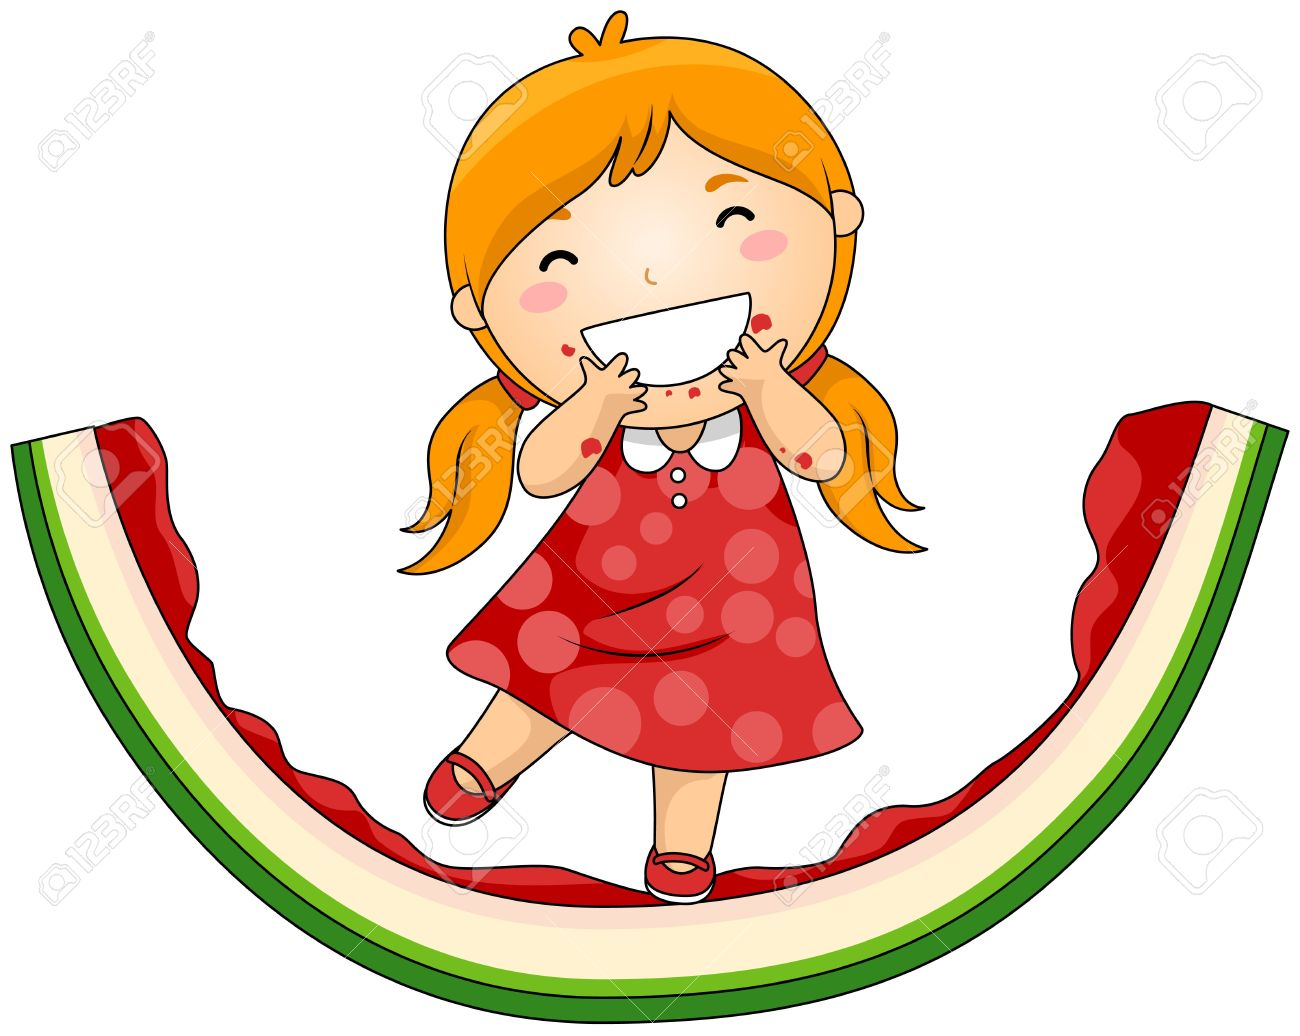 Eating watermelon clipart.